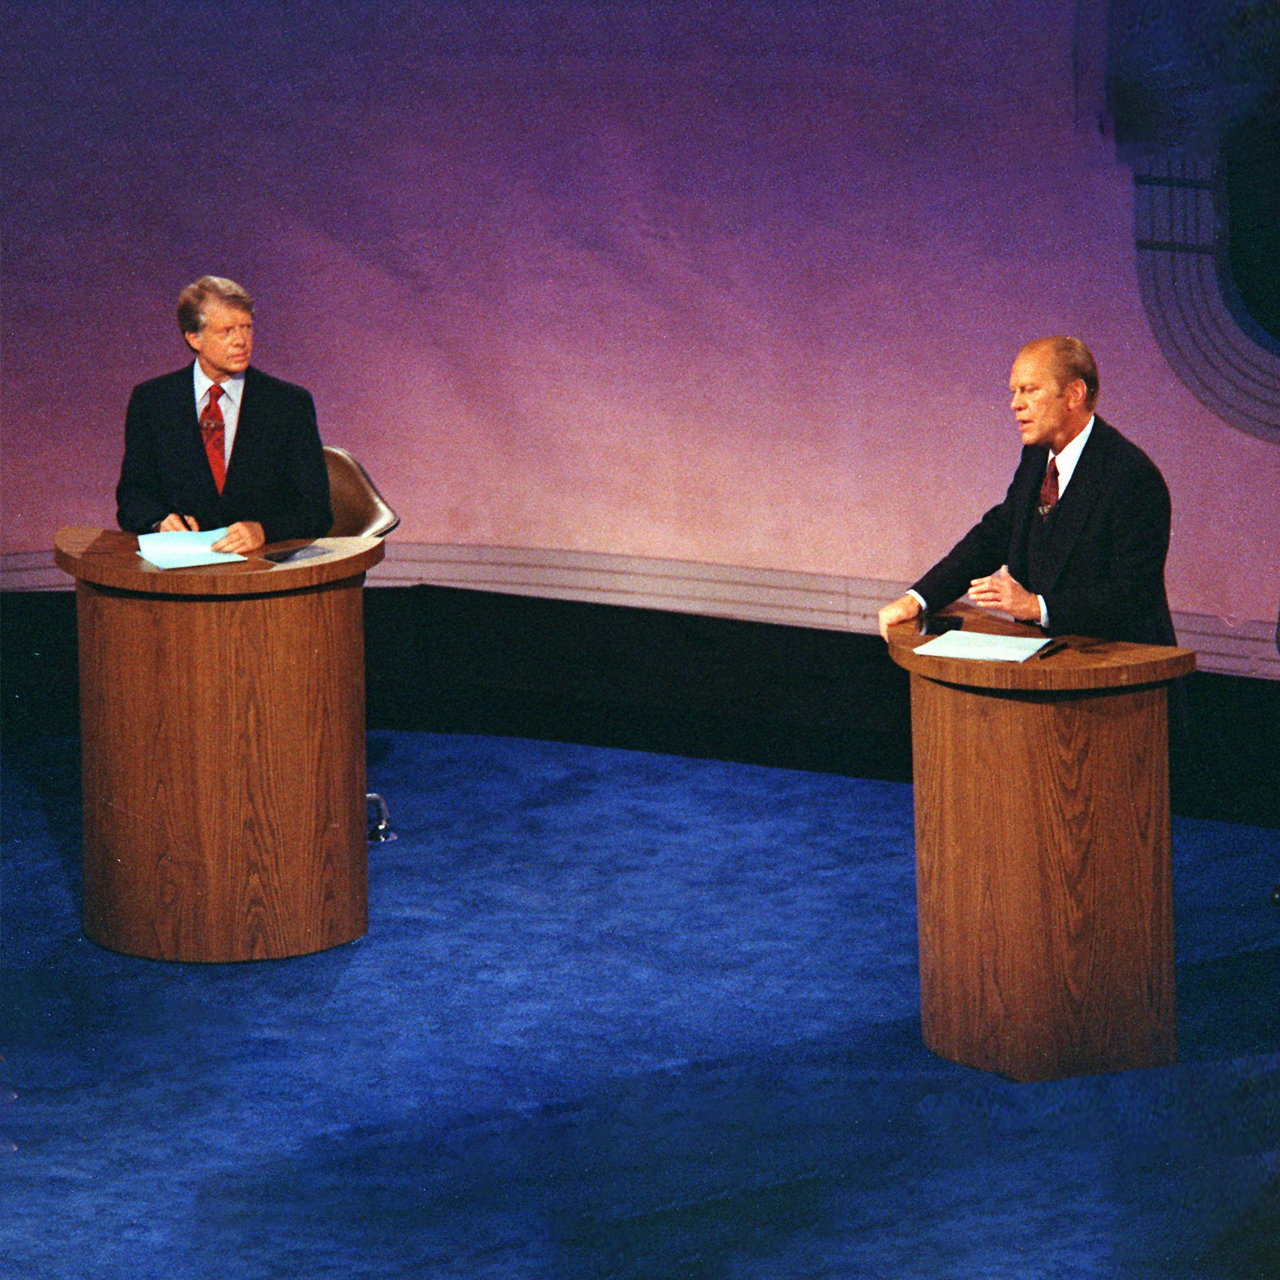 The 1976 Presidential Master Debates at the Walnut Street Theater